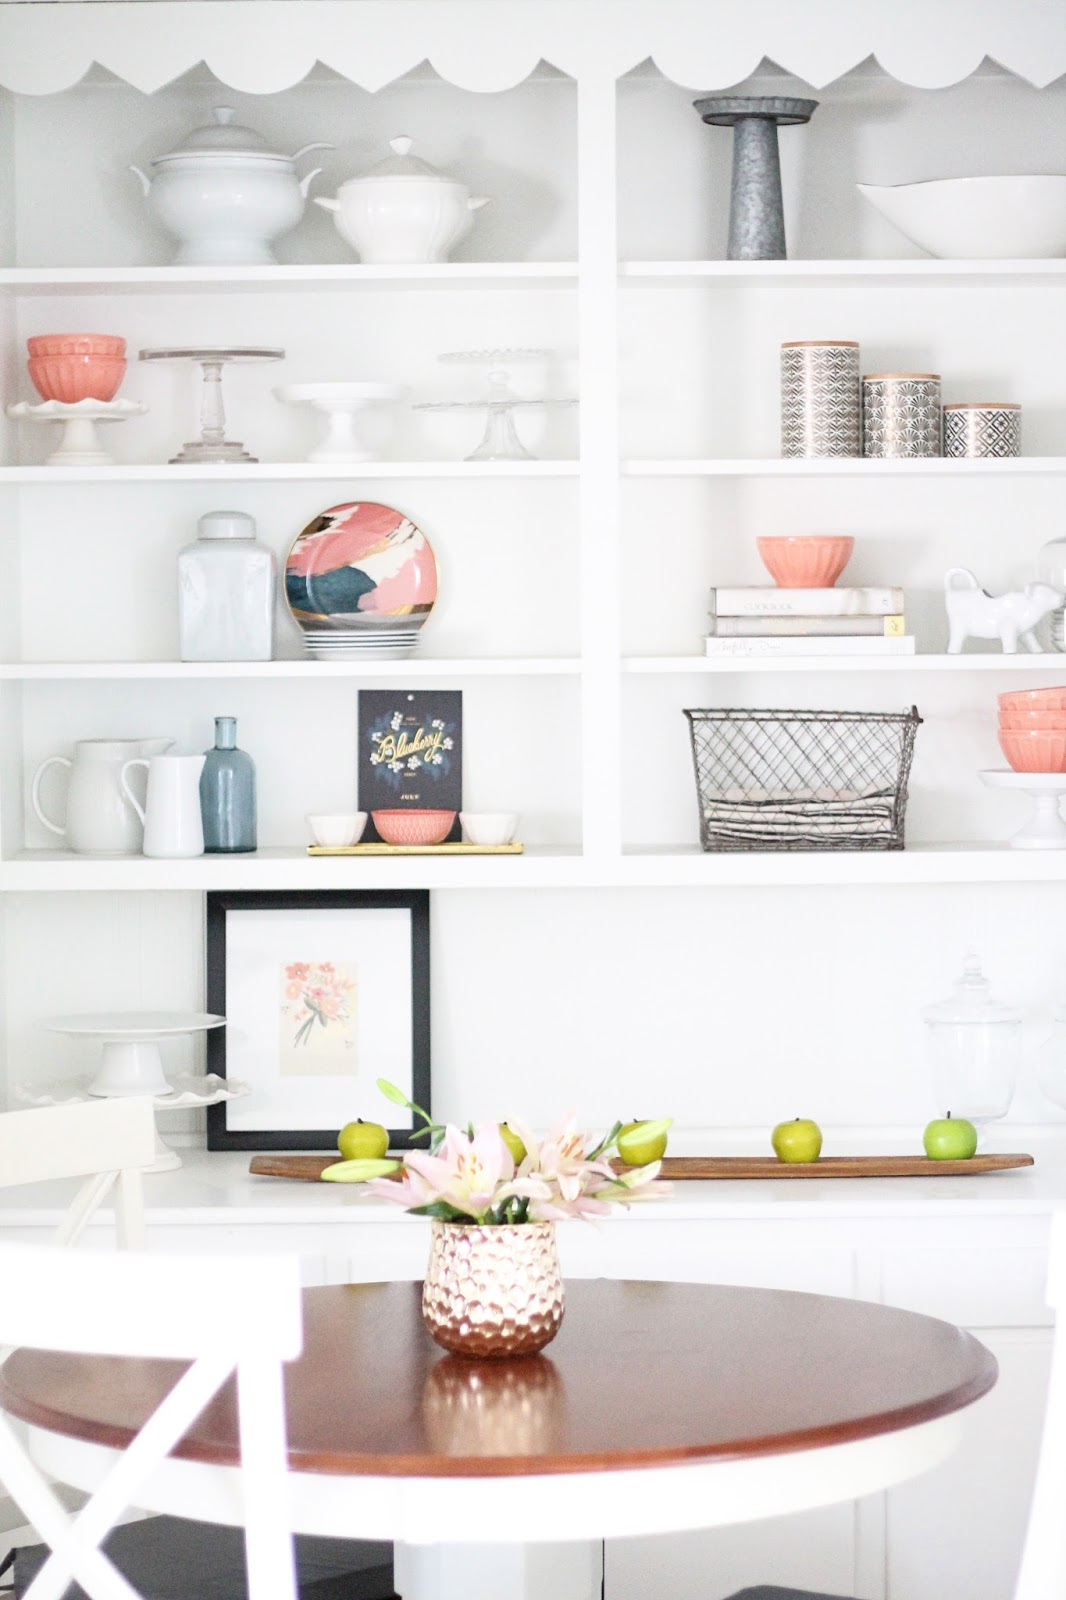 12th and White: Restyling Our Breakfast Nook